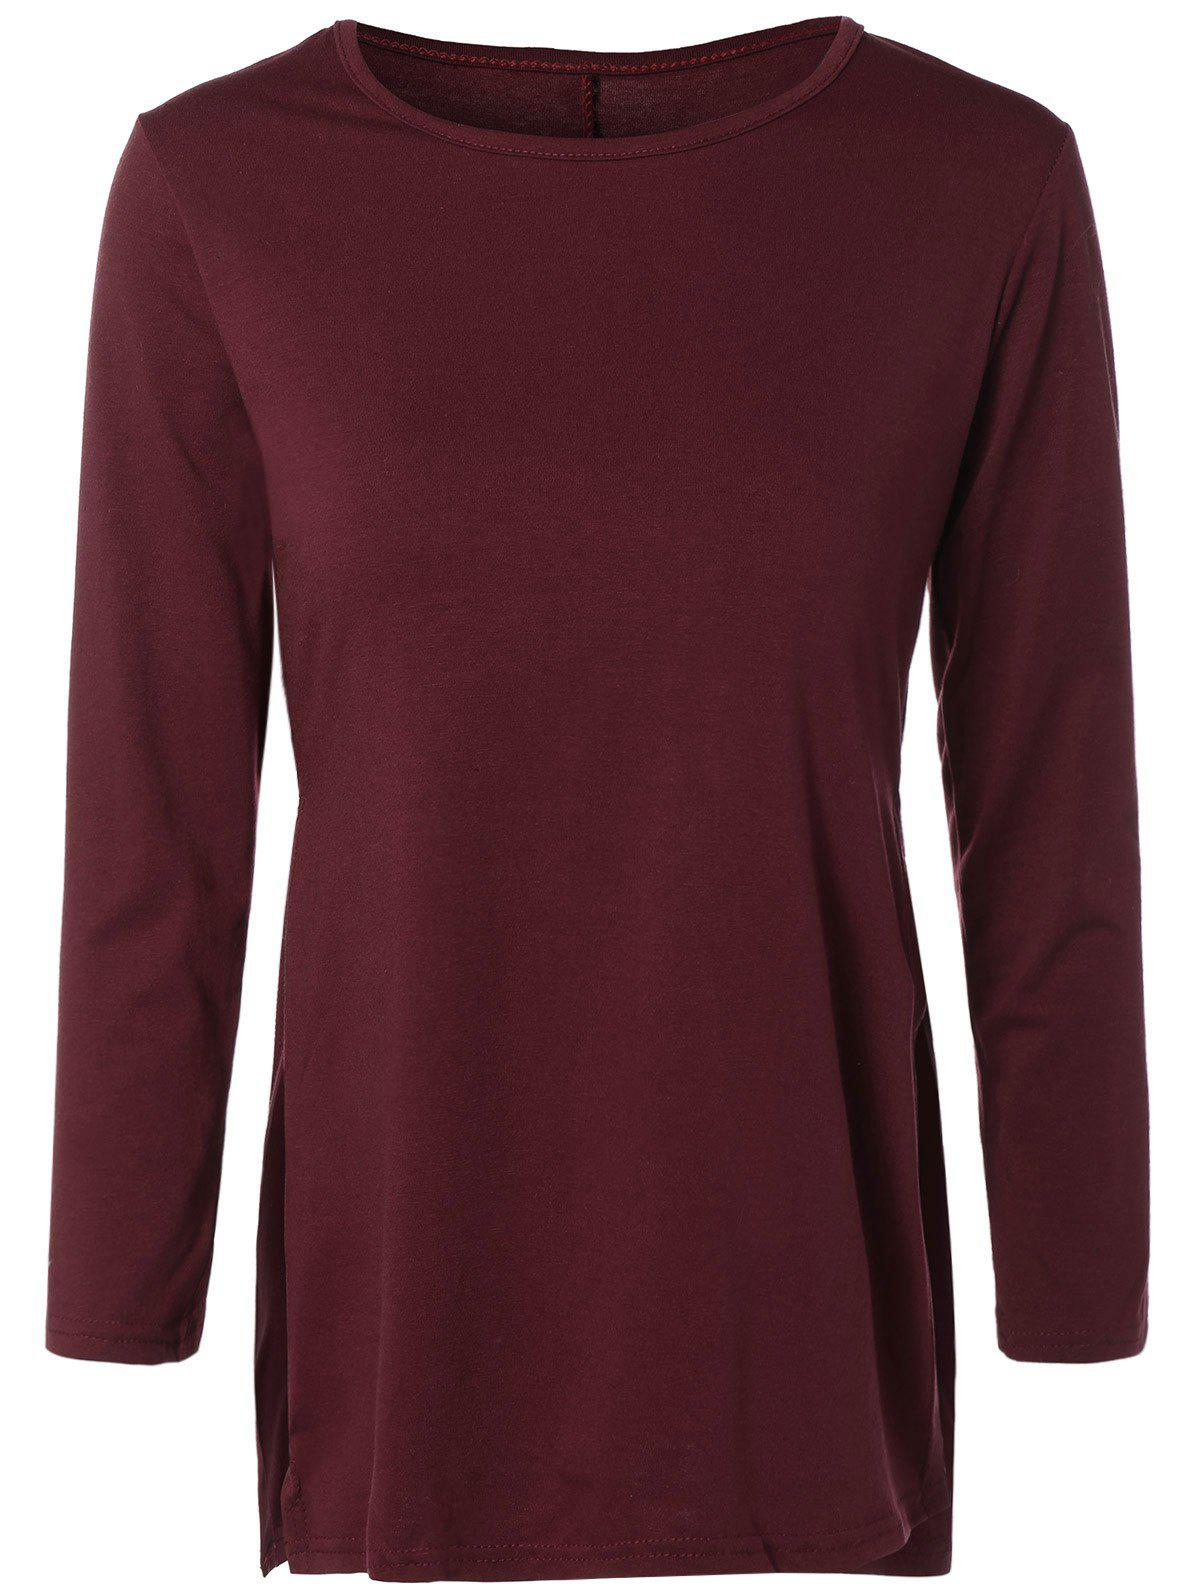 Side Slit Long T-Shirt - WINE RED XL